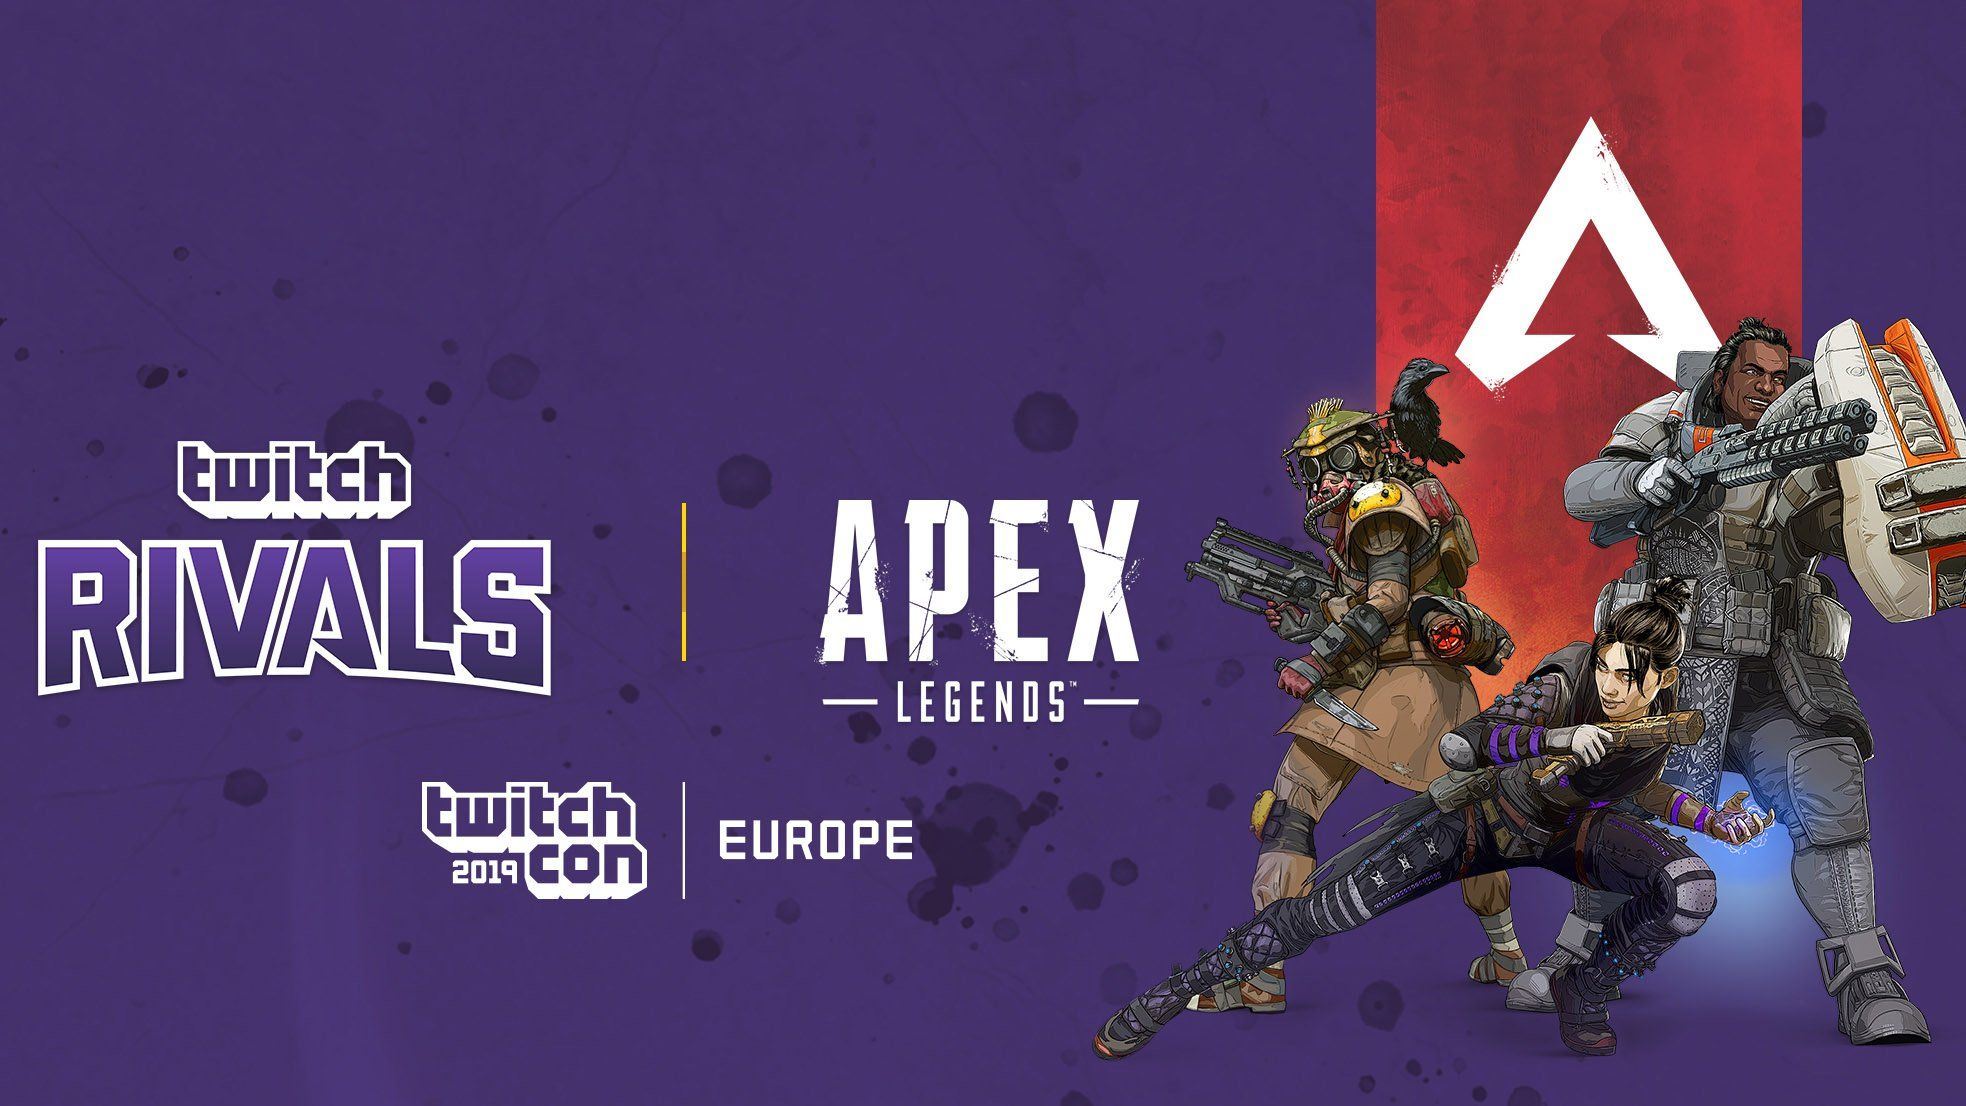 Apex legends twitch rivals finals how to watch